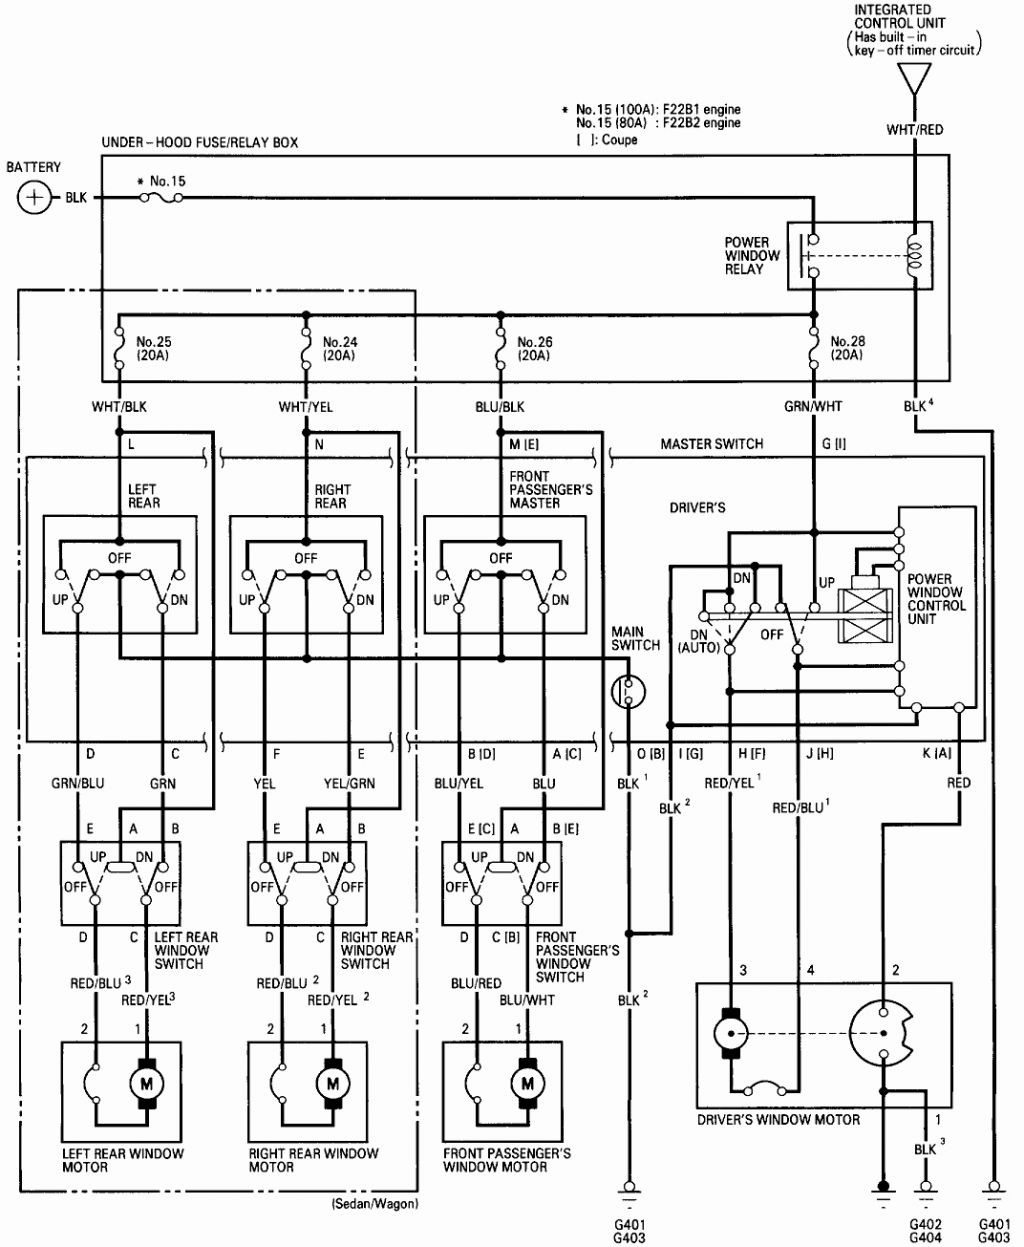 Honda Accord Engine Wiring Diagram Trusted Diagrams 2003 Wire Harness F22b2 Automotive U2022 95 Radio